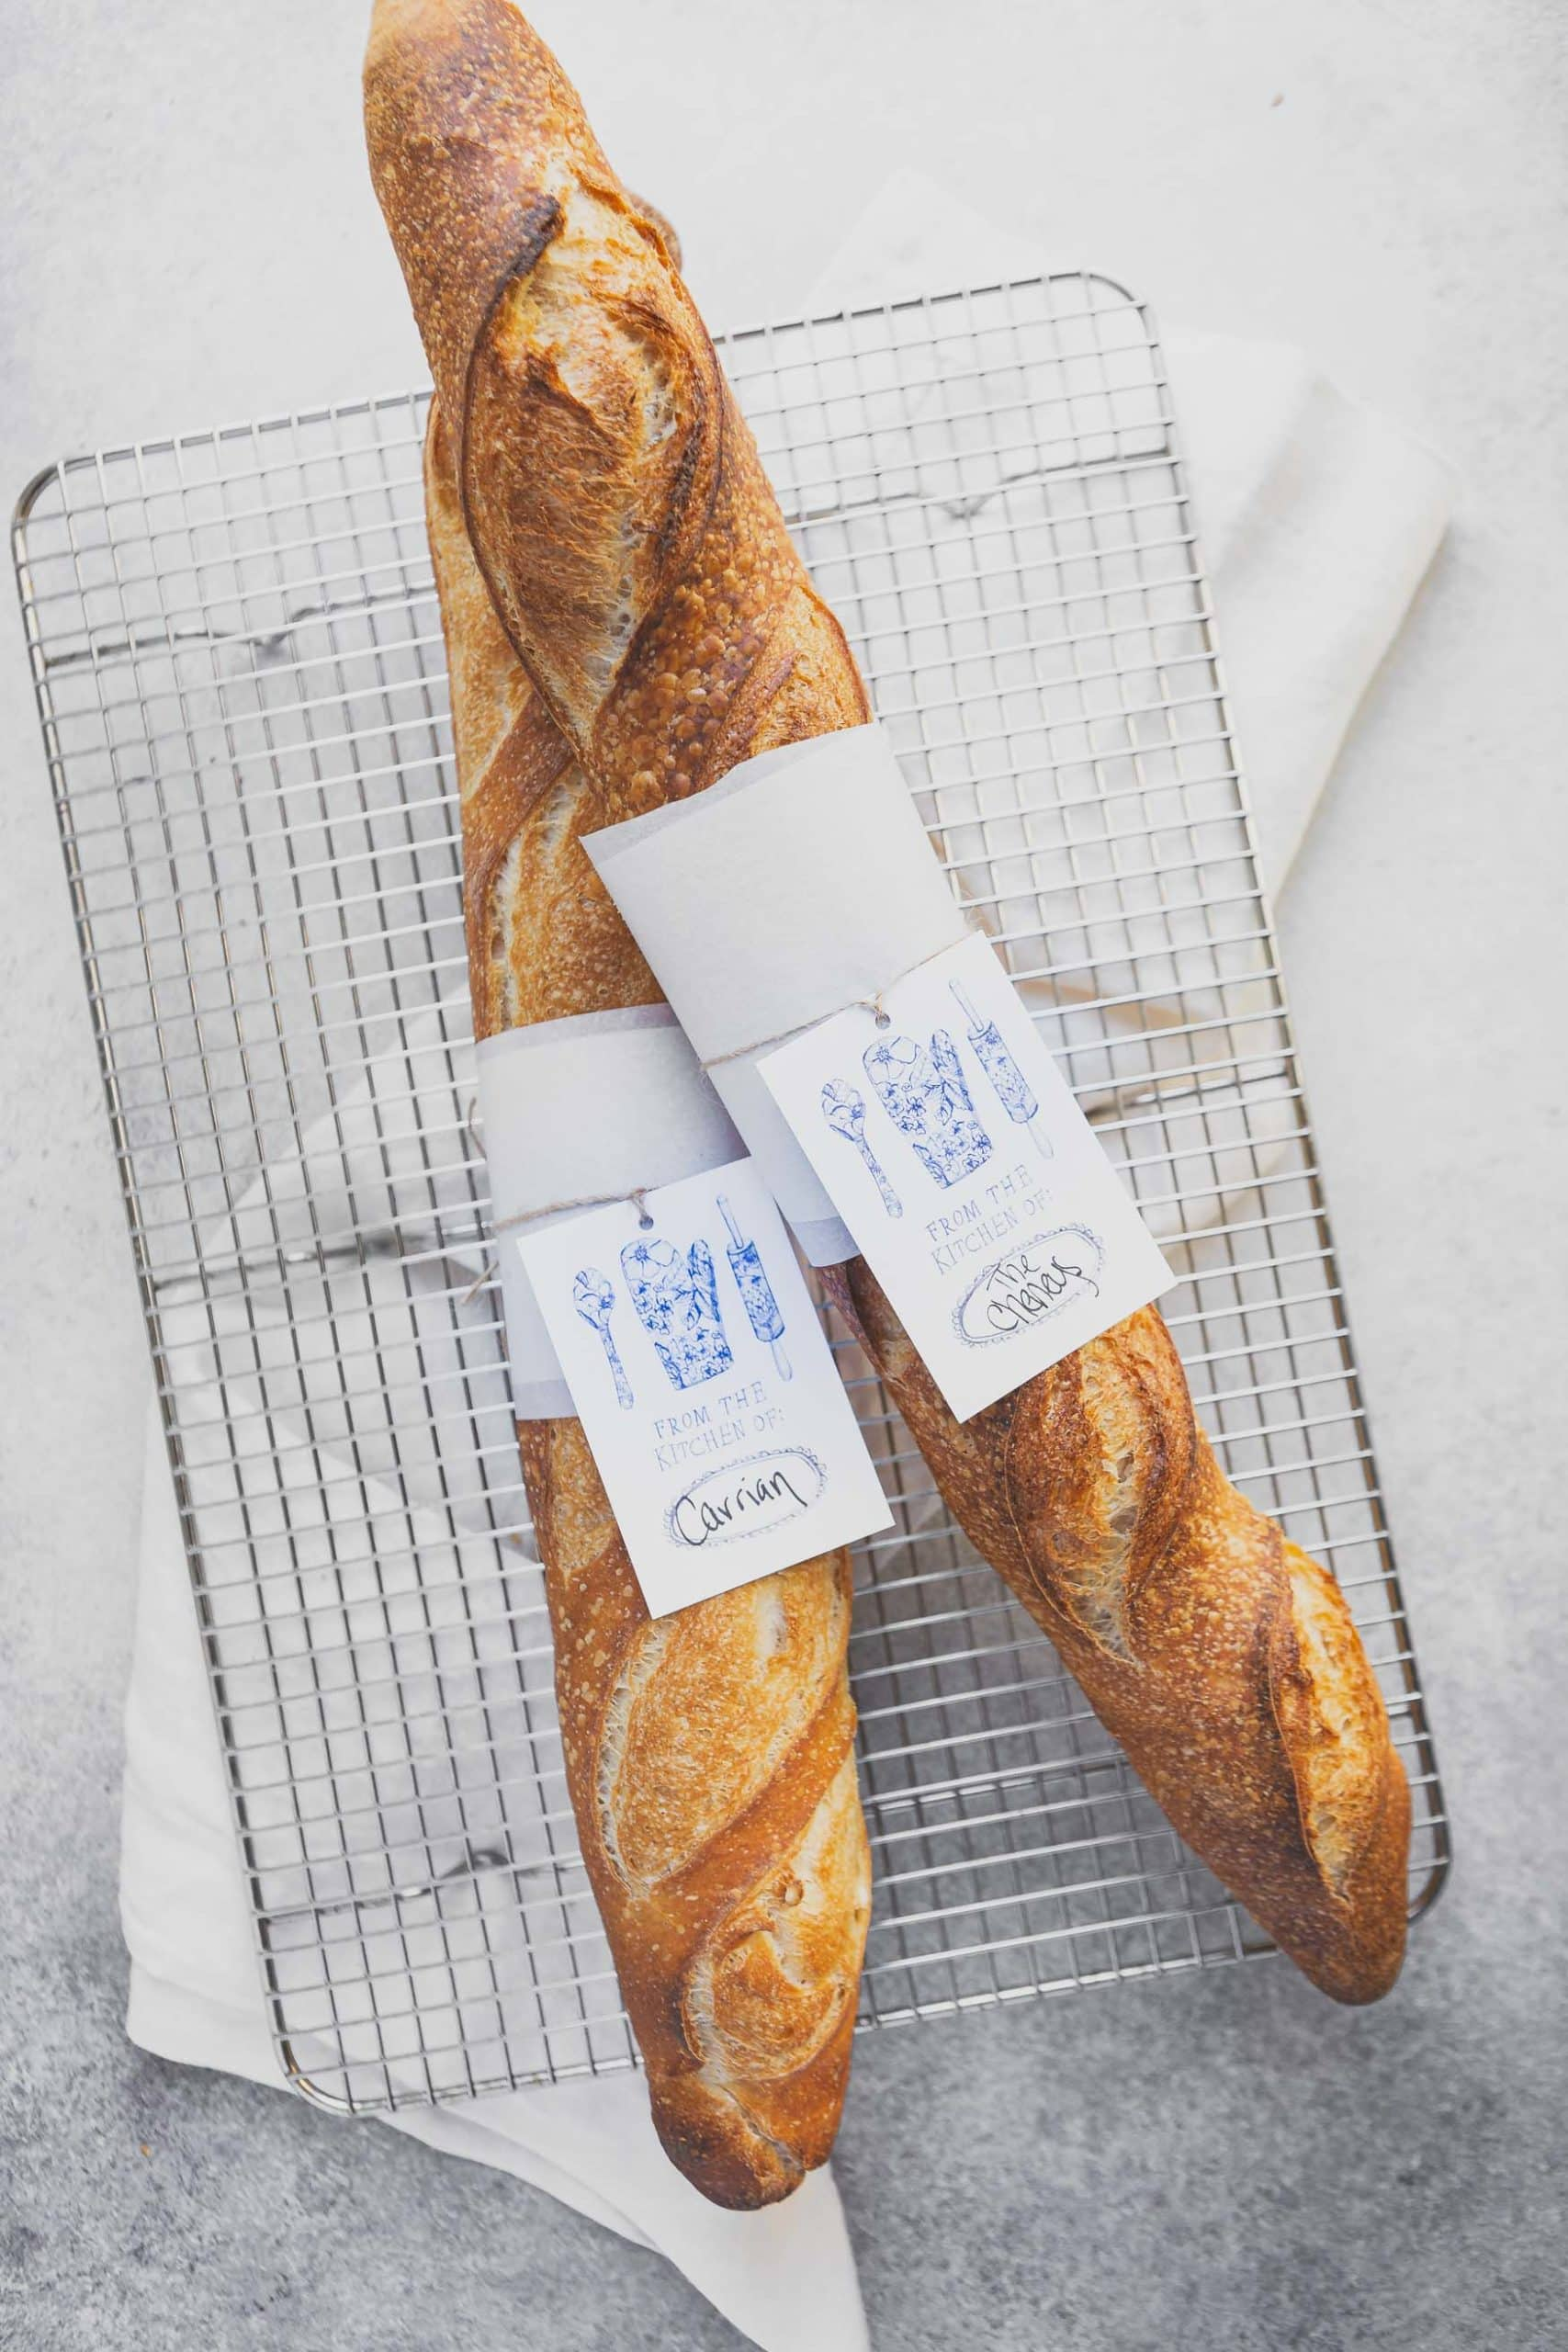 Two loaves of freshly baked baguettes with a paper tag tied around the middle.